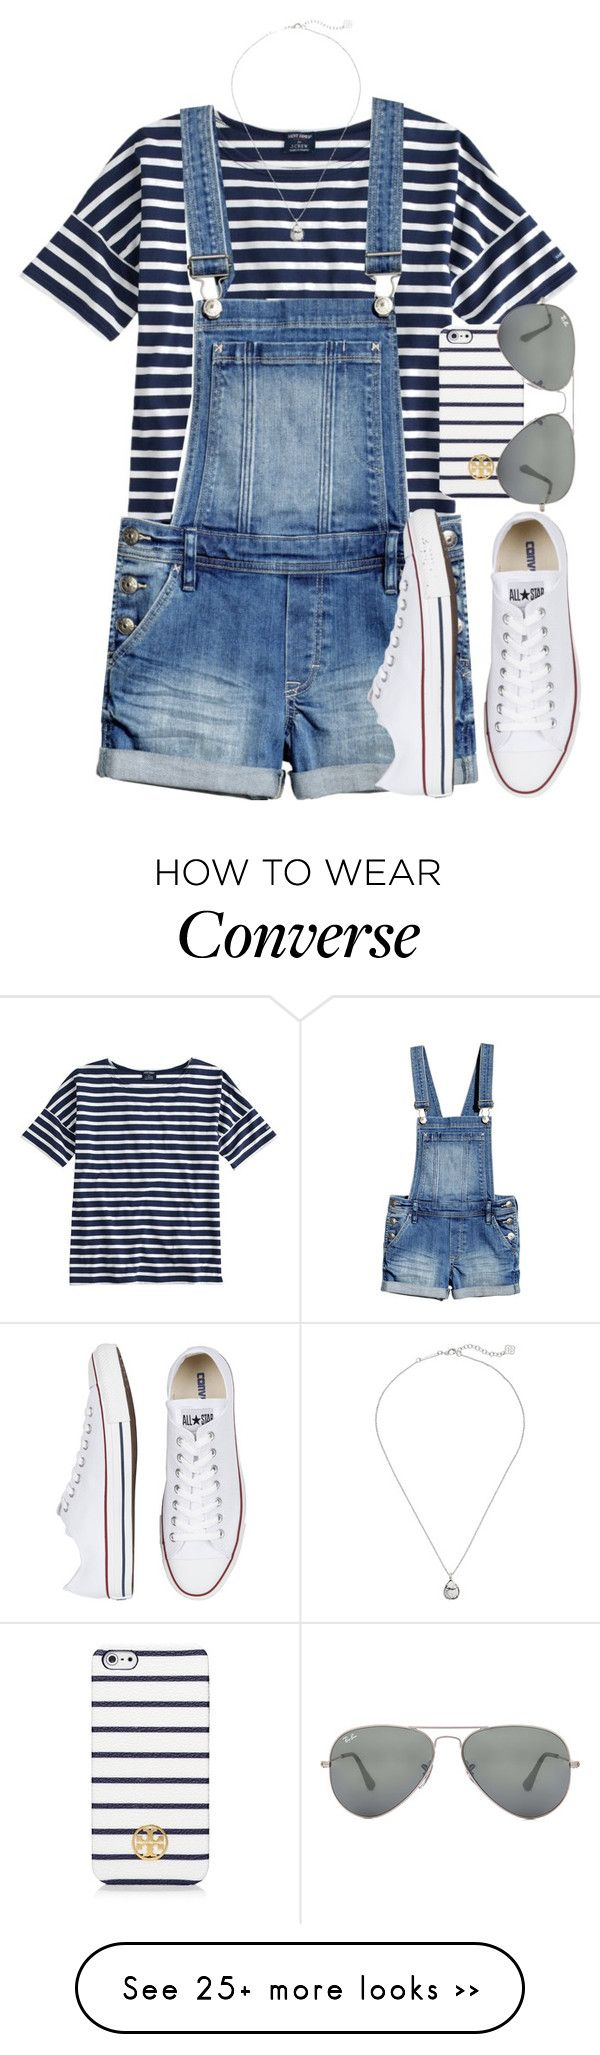 """""""stripes"""" by tabooty on Polyvore featuring Saint James, Converse, Kendra Scott, Tory Burch and Ray-Ban"""